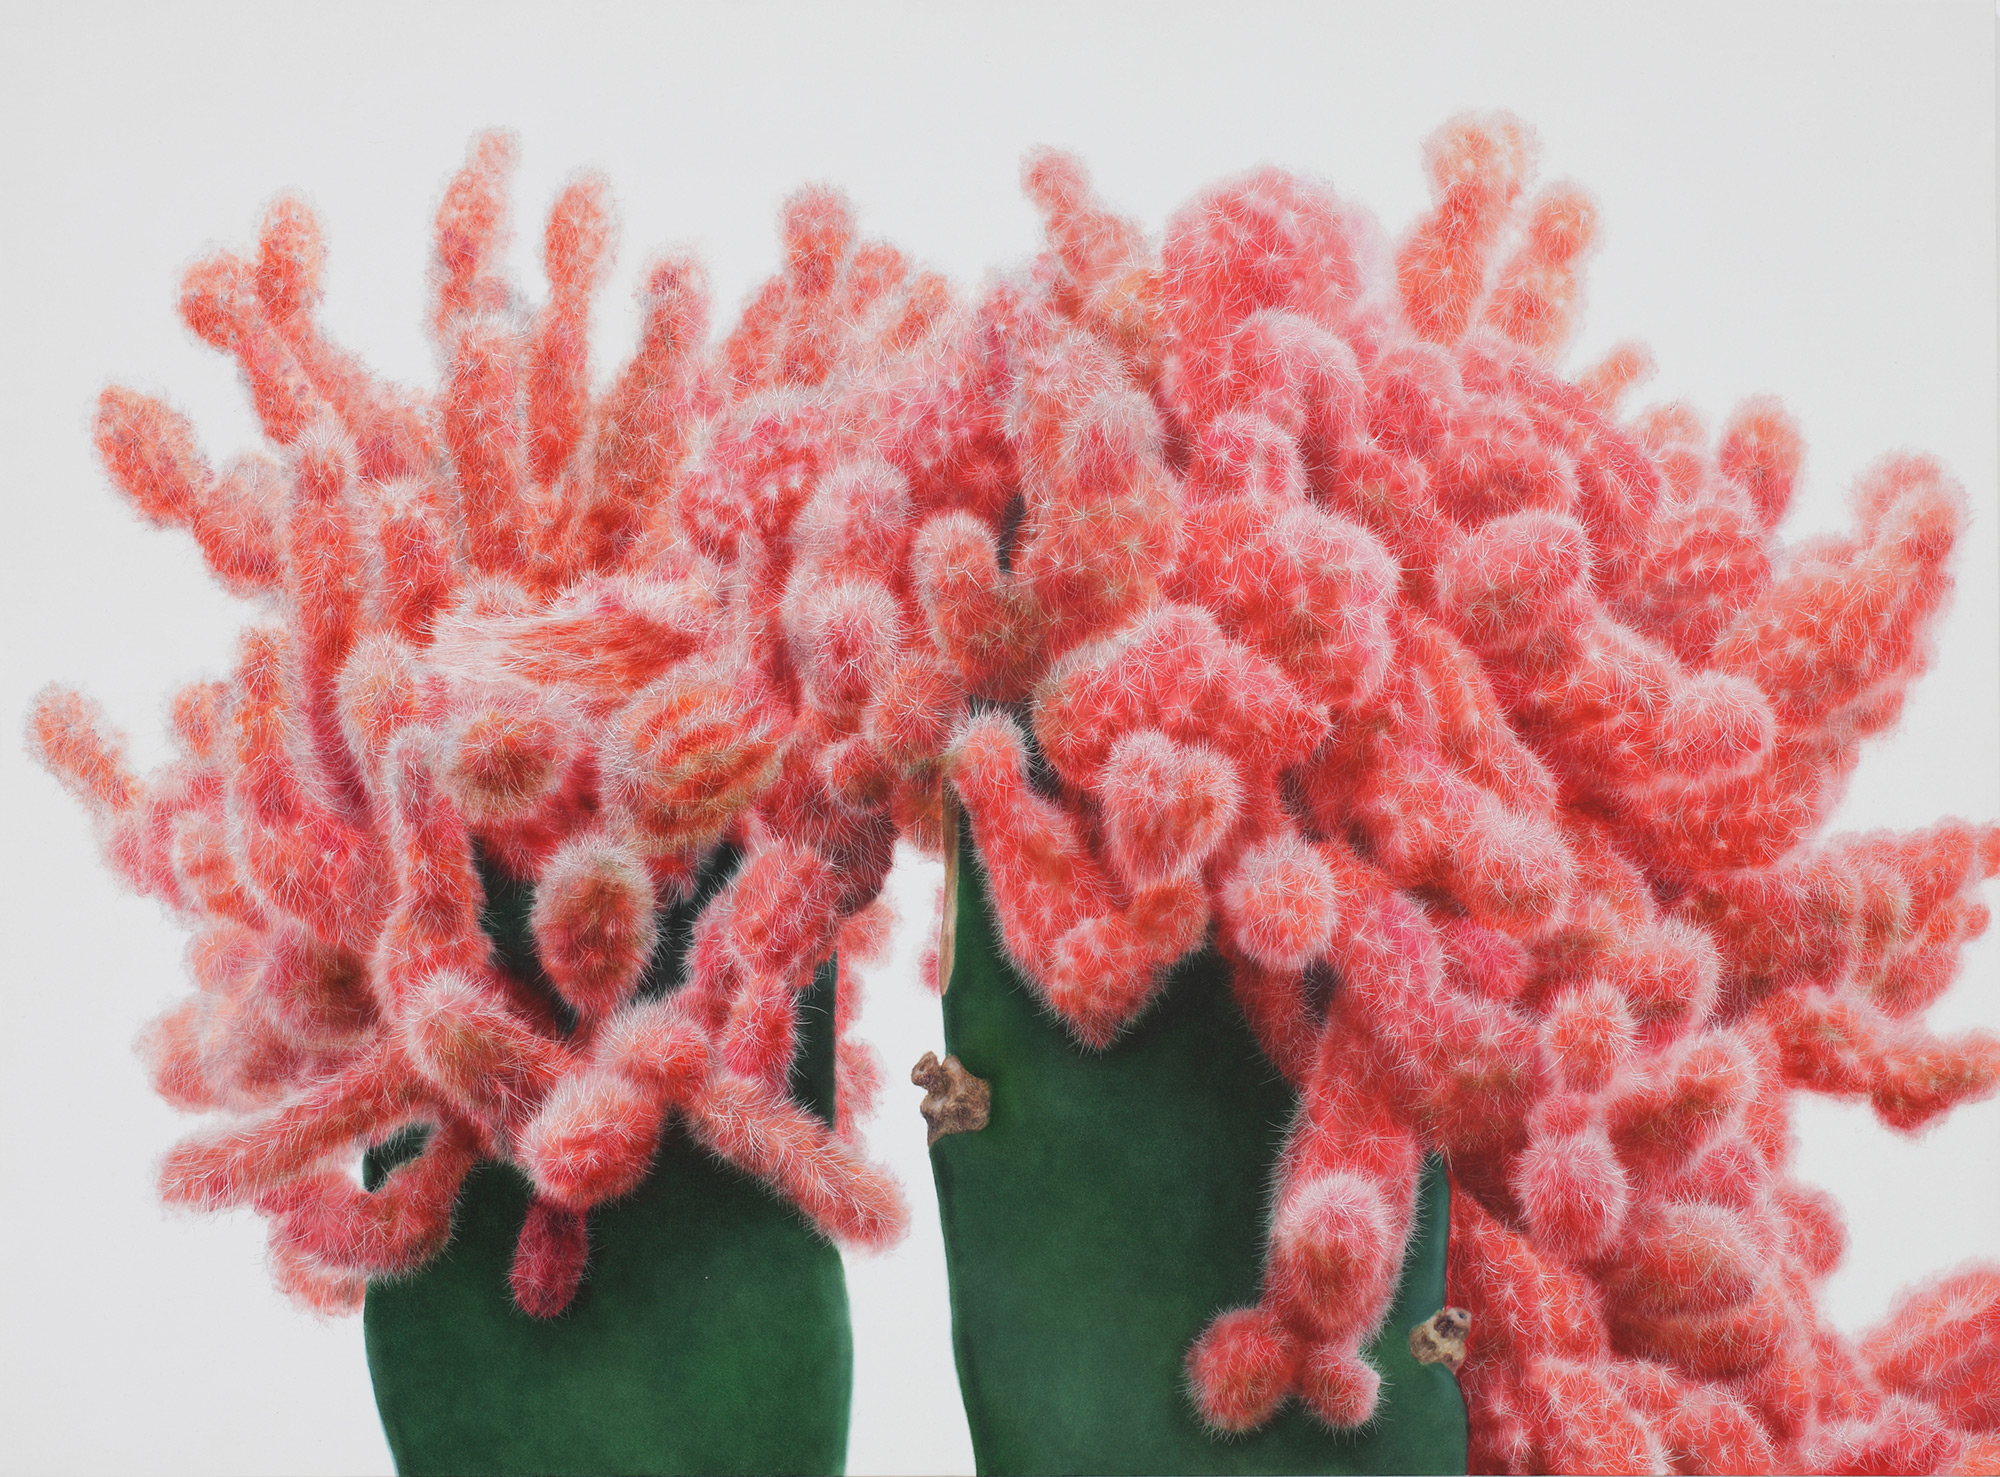 Cactus No. 71 , 2011. Oil on canvas. Courtesy Johyun Gallery.